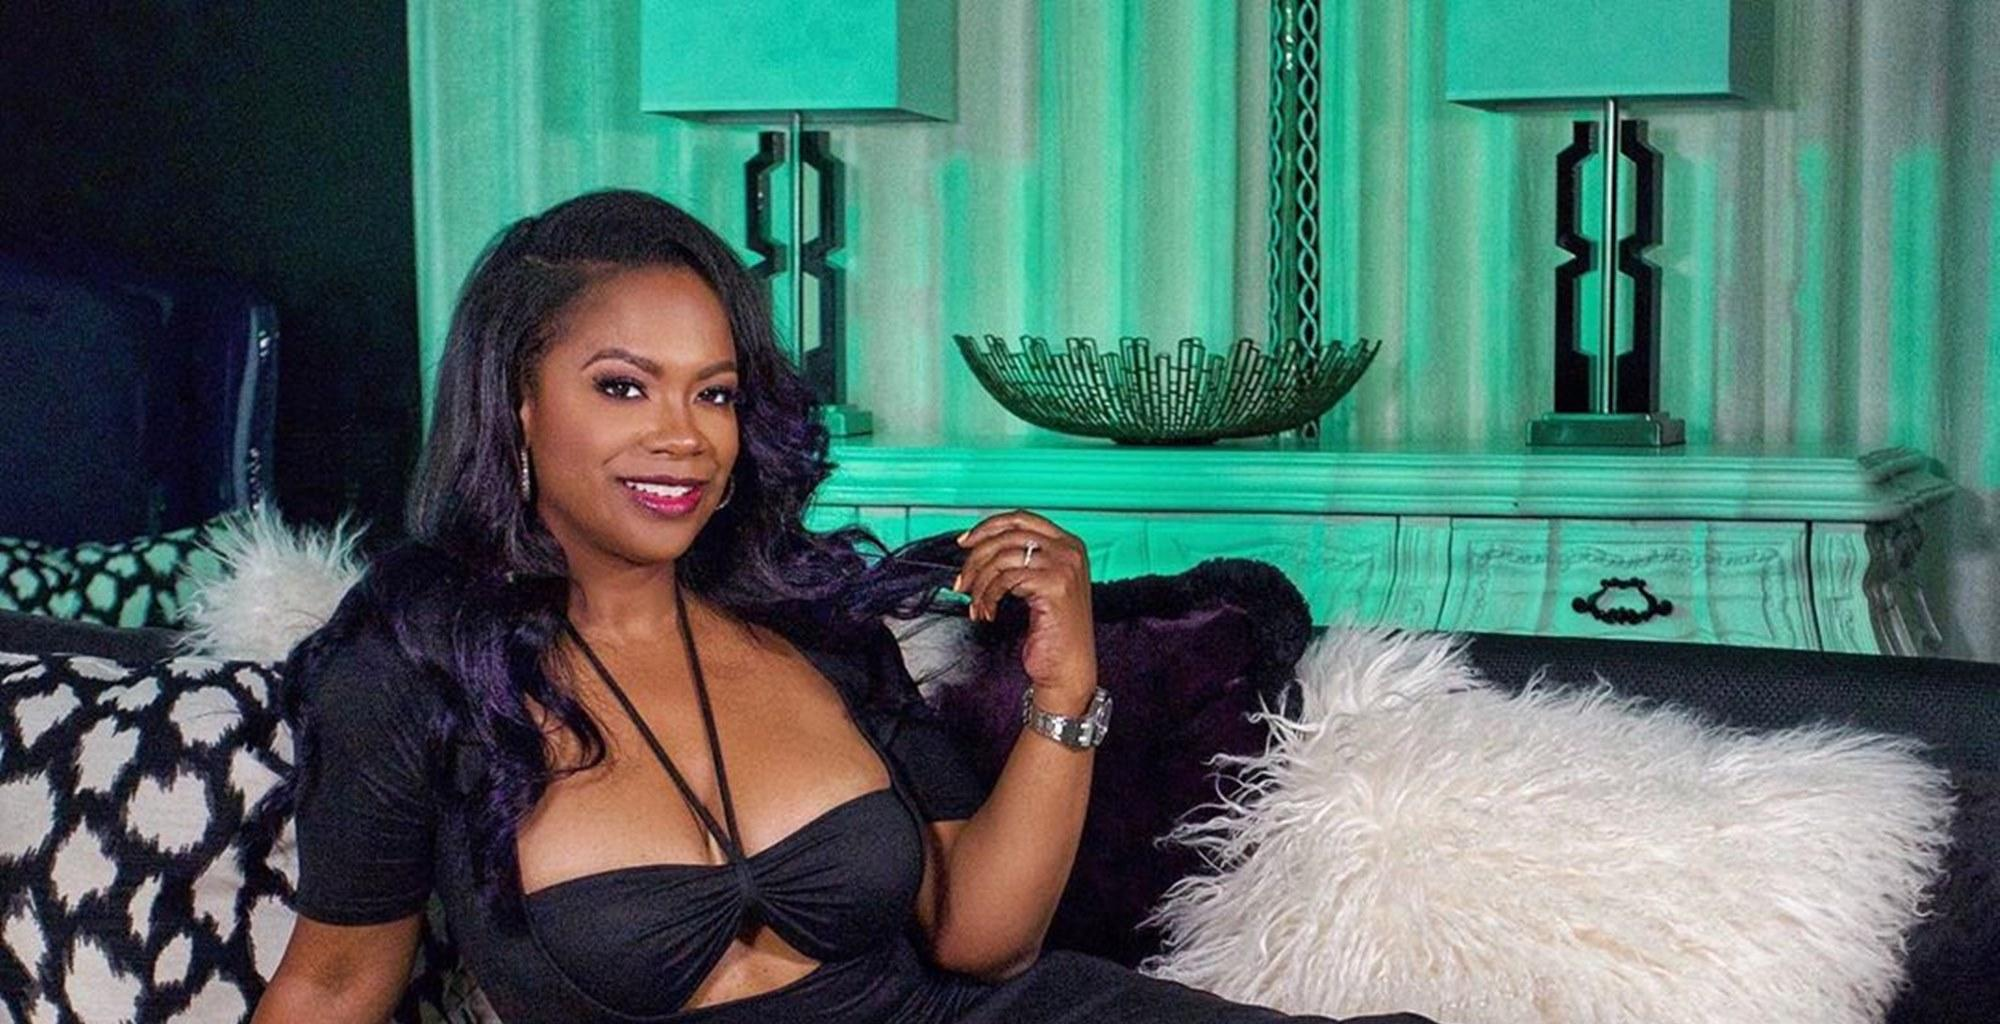 Kandi Burruss Makes Female Fans Blush With Her Racy Video